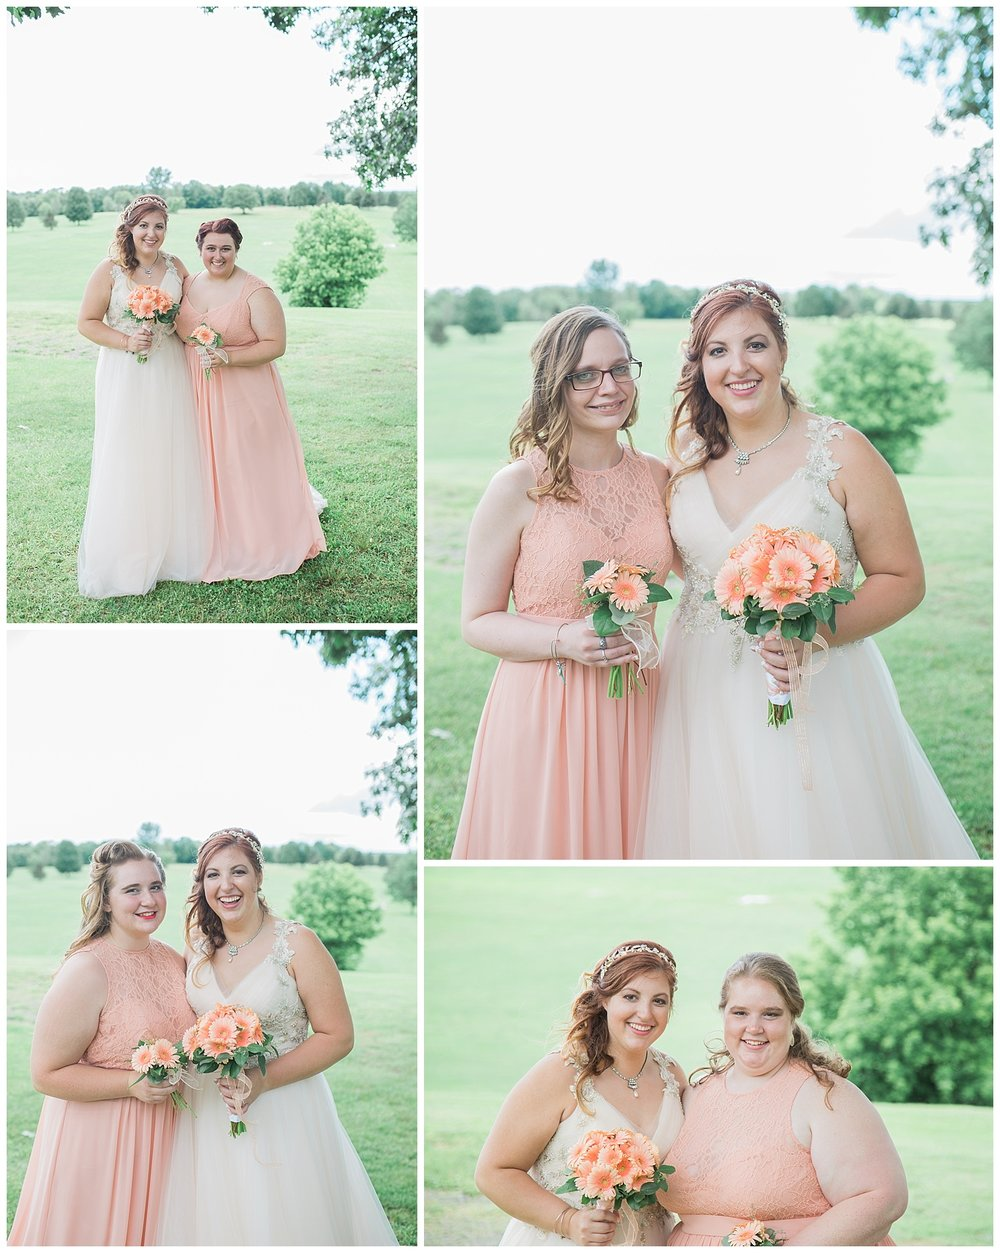 Brian and Molly Wed in Conesus NY - Lass & Beau-614_Buffalo wedding photography.jpg